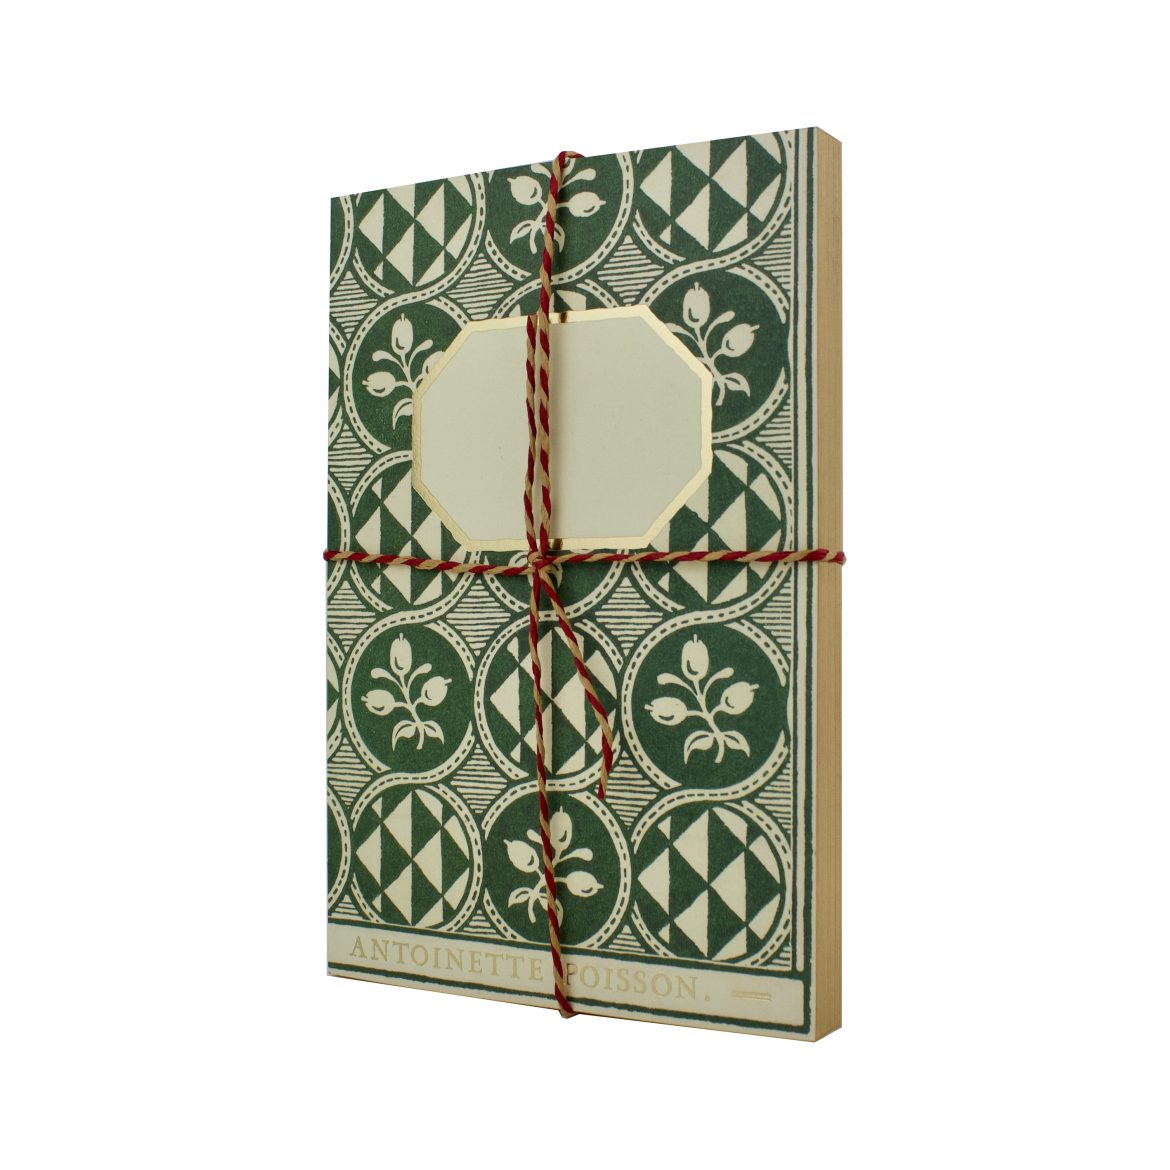 Antoinette Poisson Olives Vert Notebook